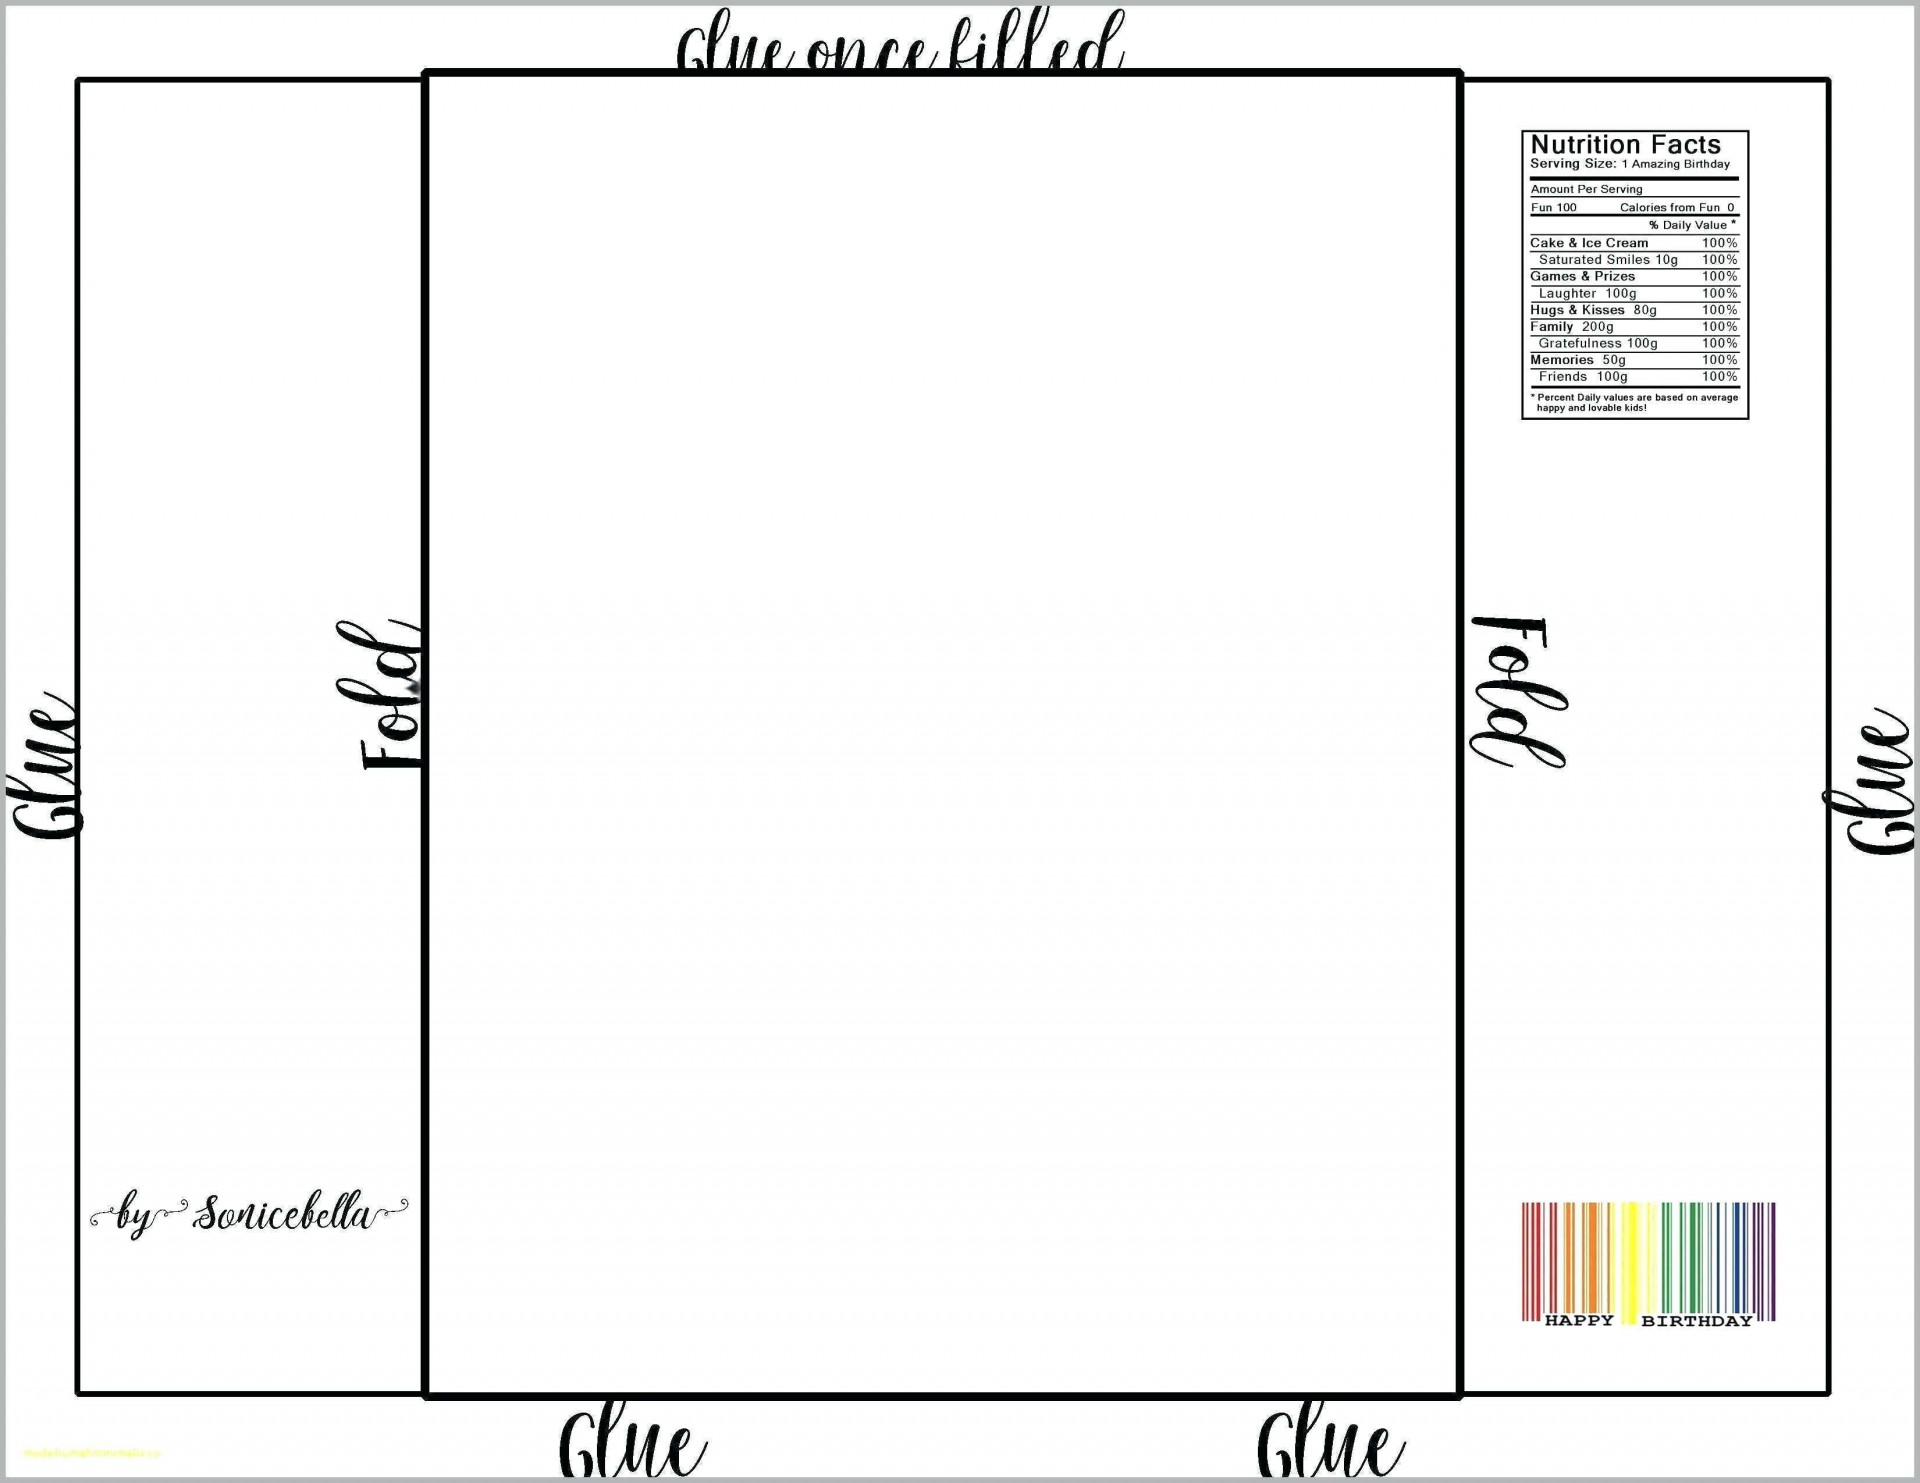 004 Staggering Candy Bar Wrapper Template For Word Free Image  Printable Microsoft1920